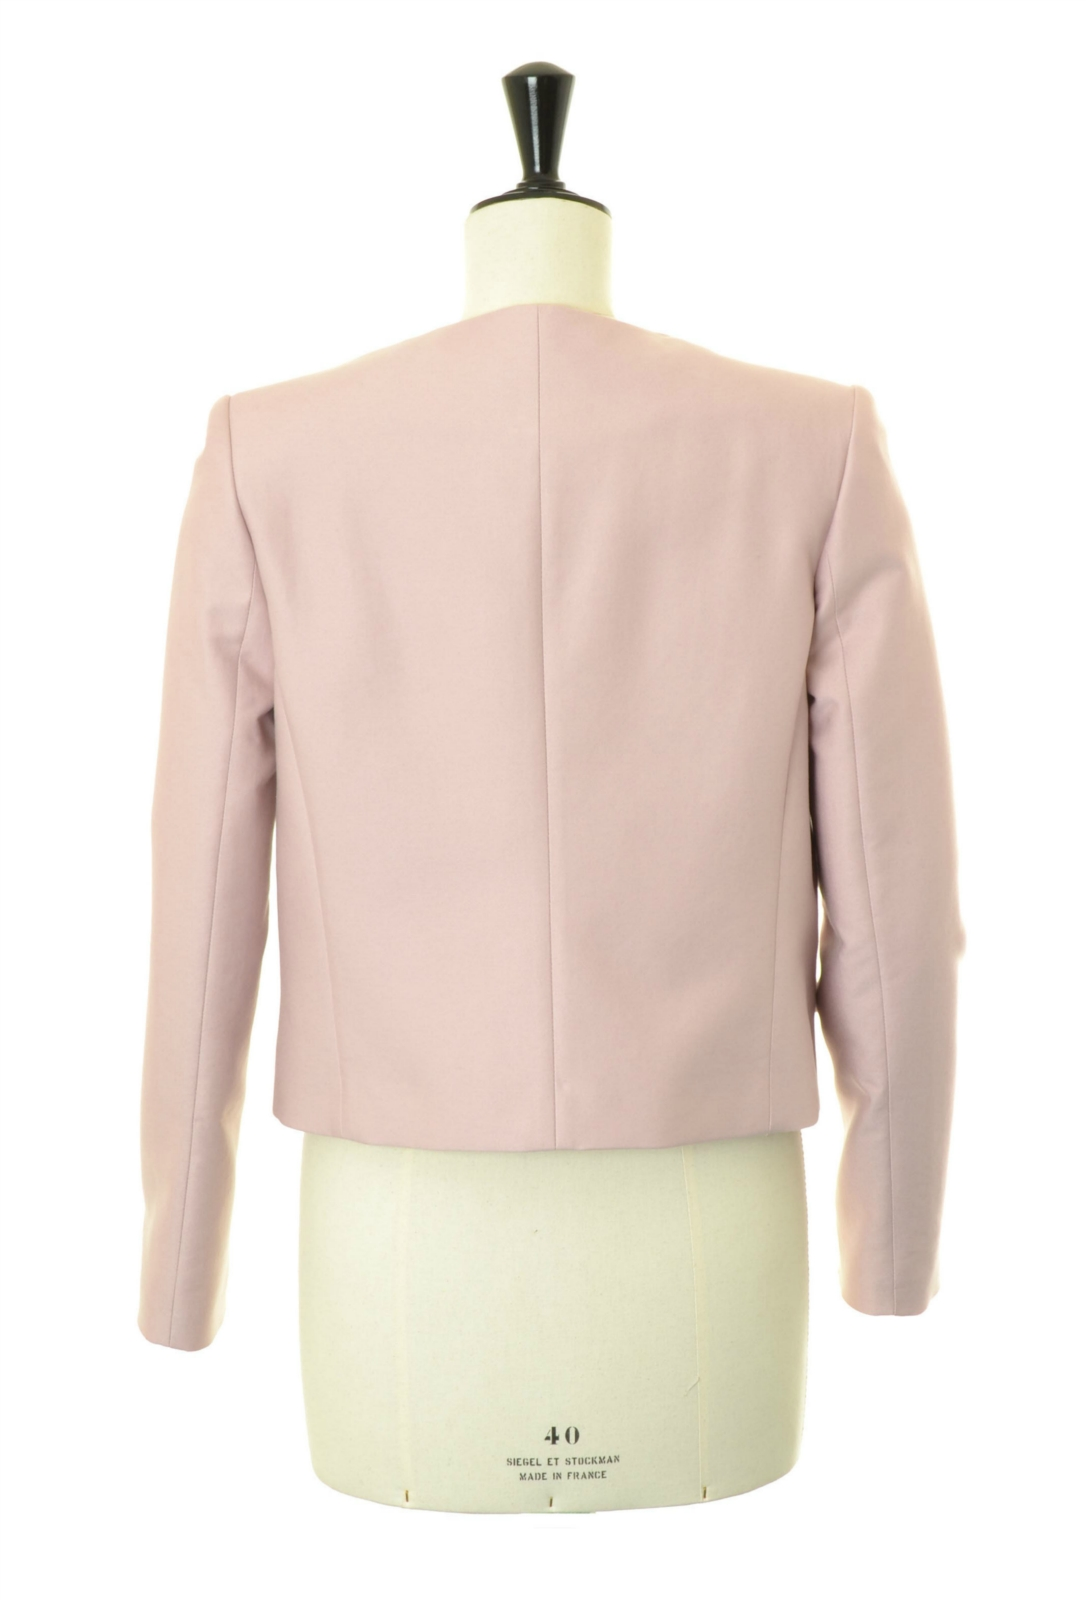 Paul Smith  S012612 Jacket Pink